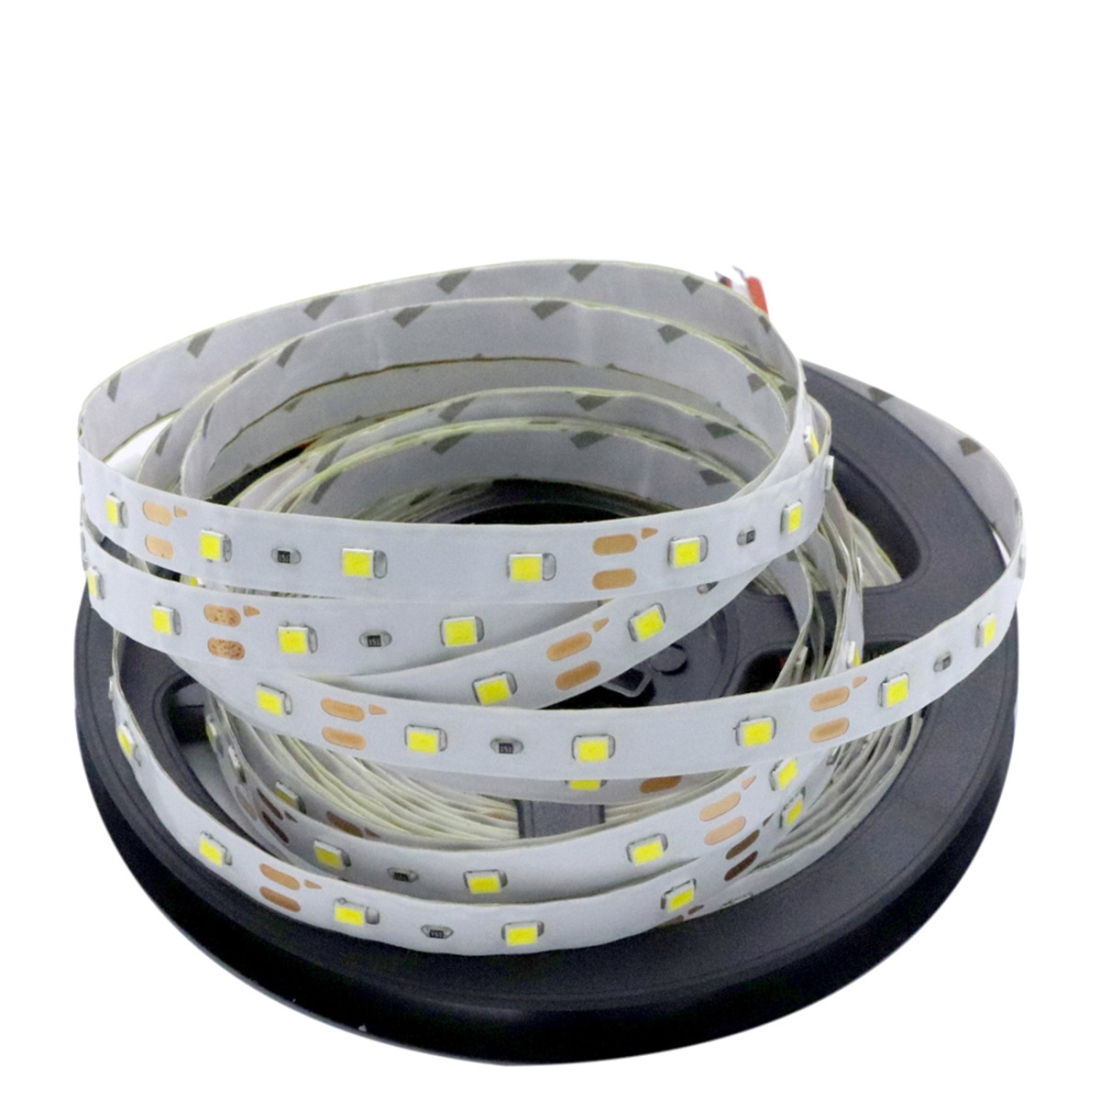 Ywxlight 5m Led Strip Lights 2835smd Non Waterproof Led Strip Dc 12v 300led Led Light Strips Cold White